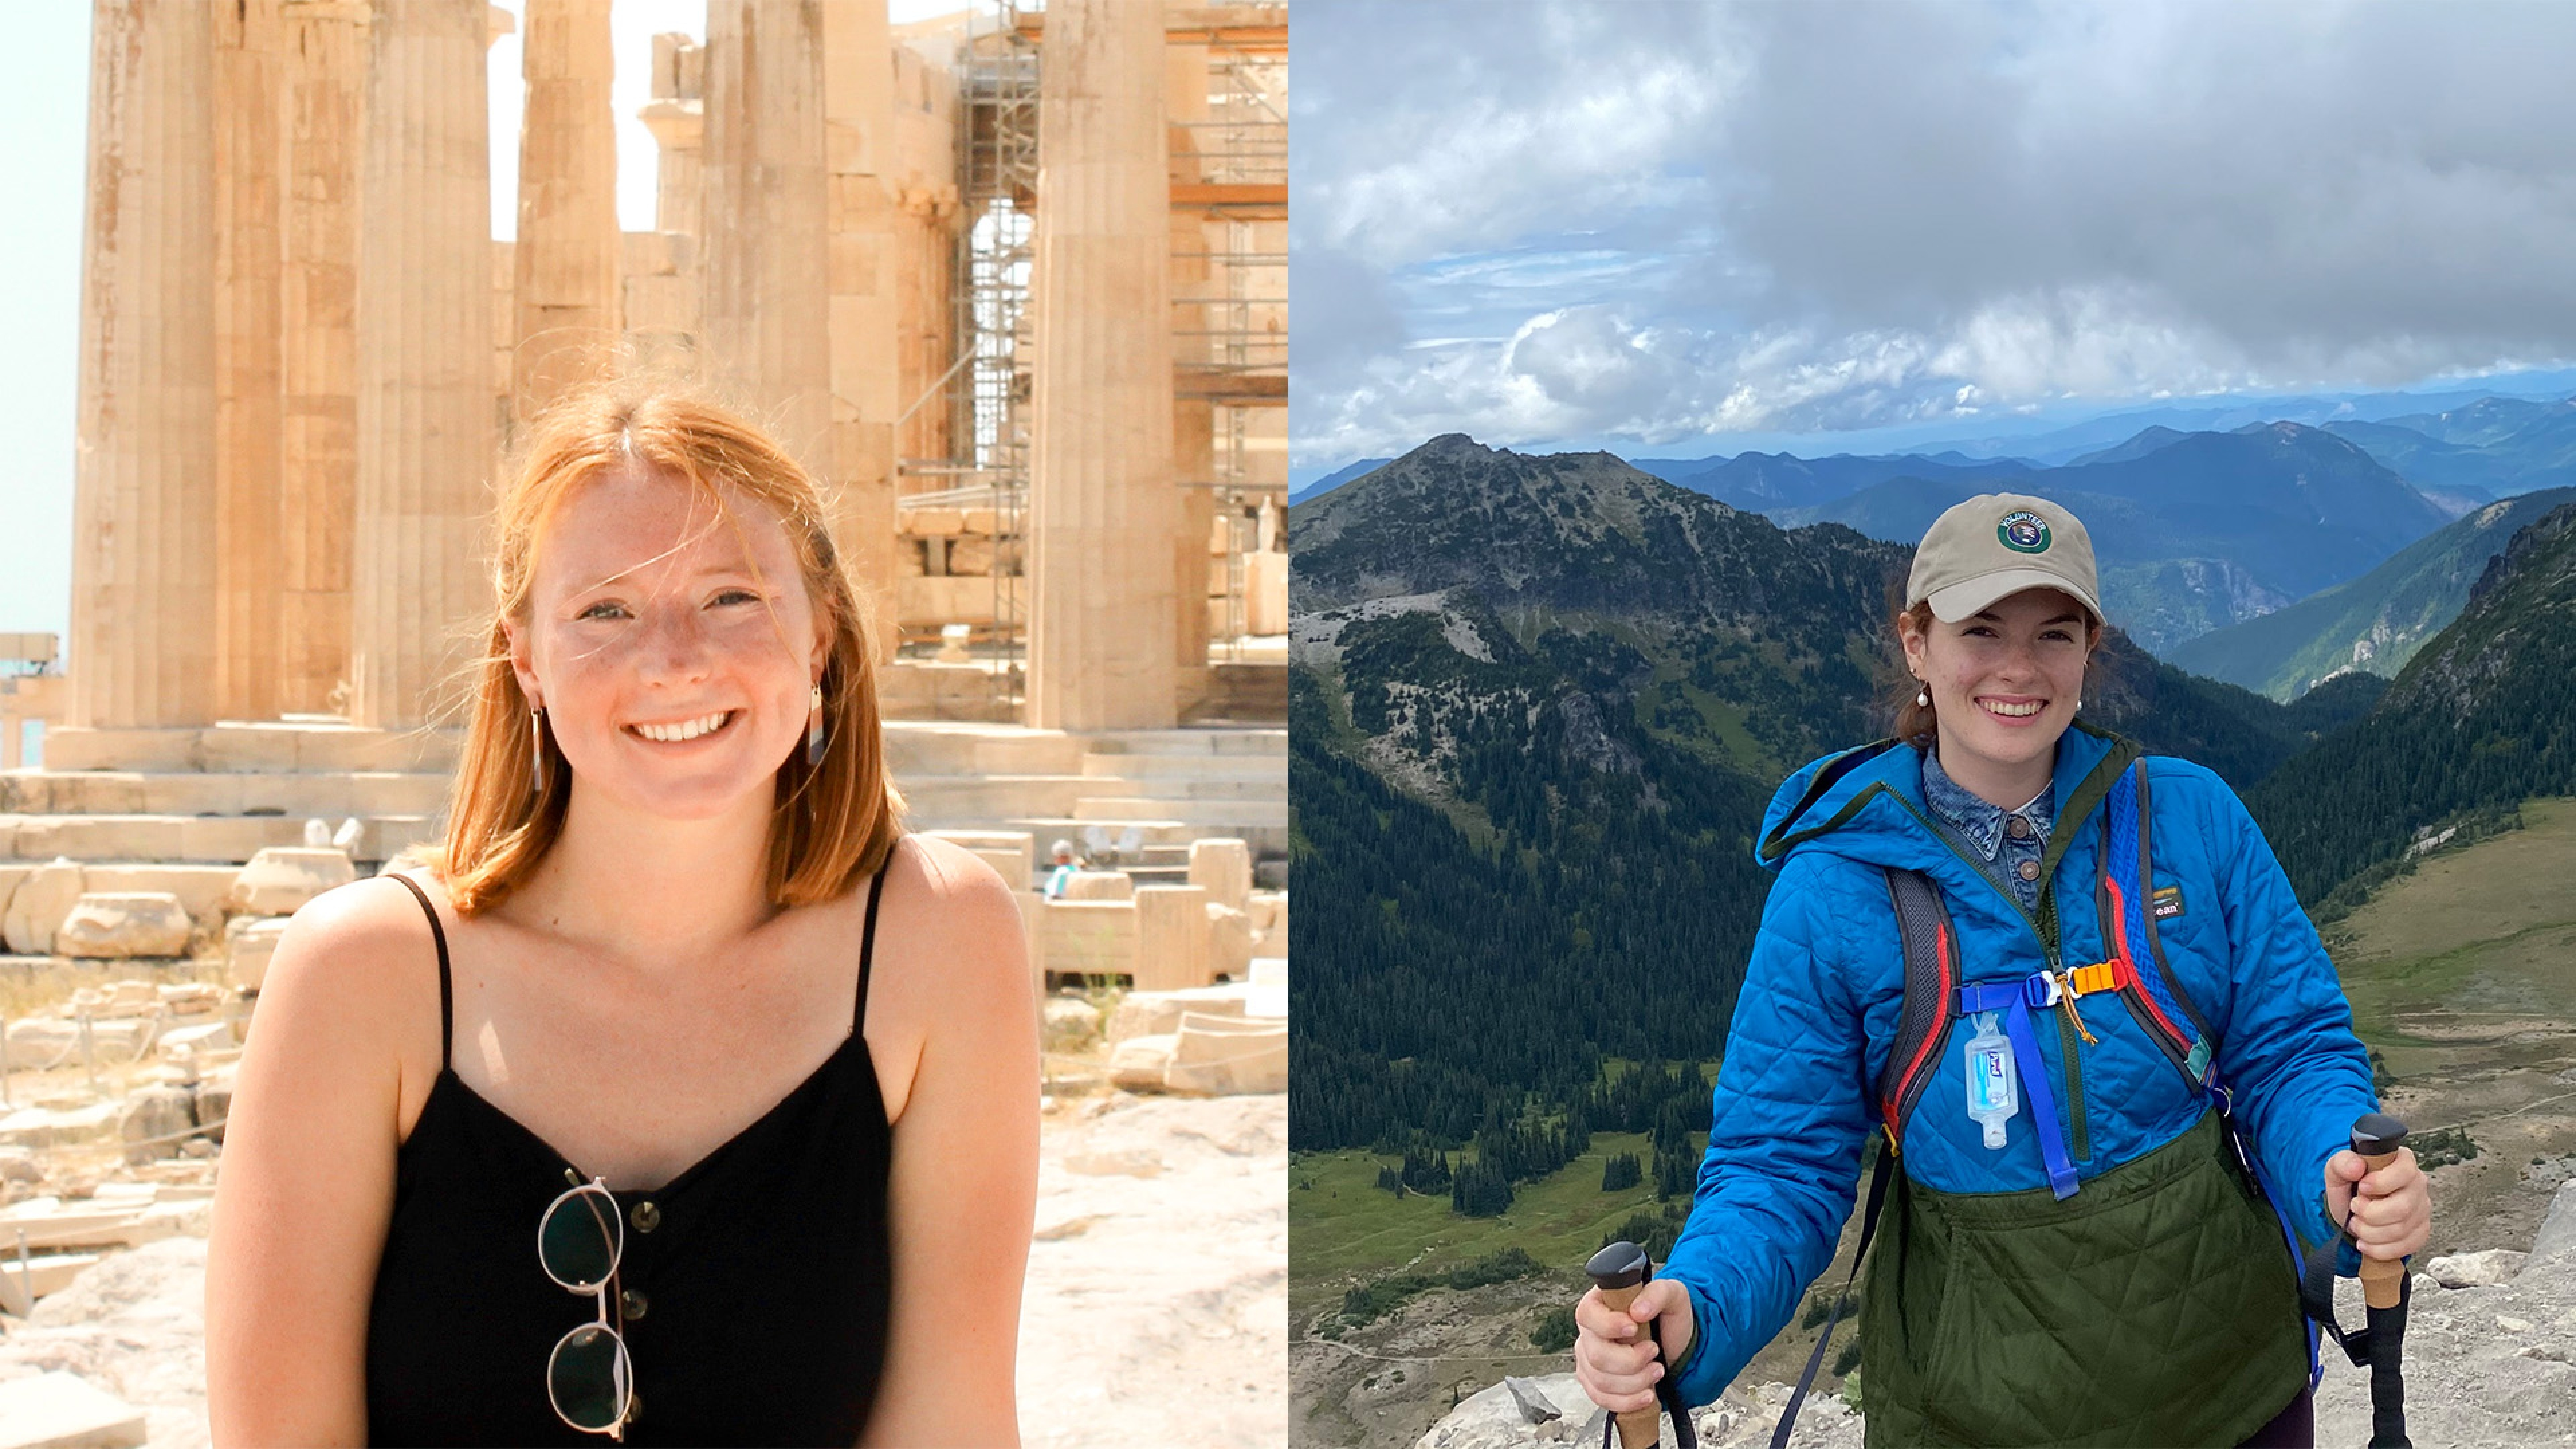 On the left: McKenzie Hitchcock smiles at the camera, posed in front of golden stone archeological ruins bathed in sunlight. On the right: Dorien Scheets poses and smiles at the camera from a mountainous summit